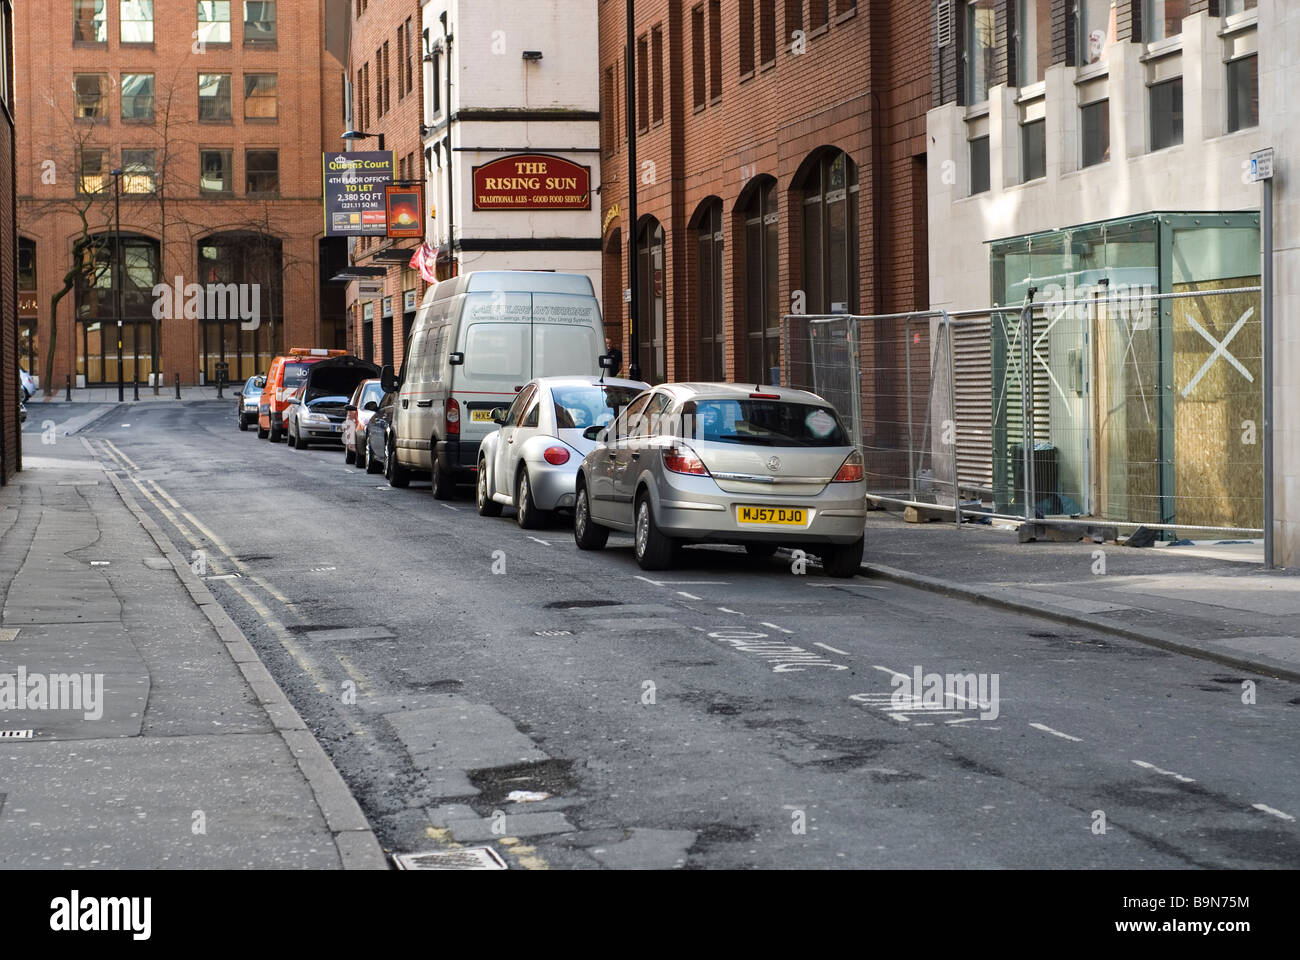 Cars parked in Manchester city centre UK Stock Photo